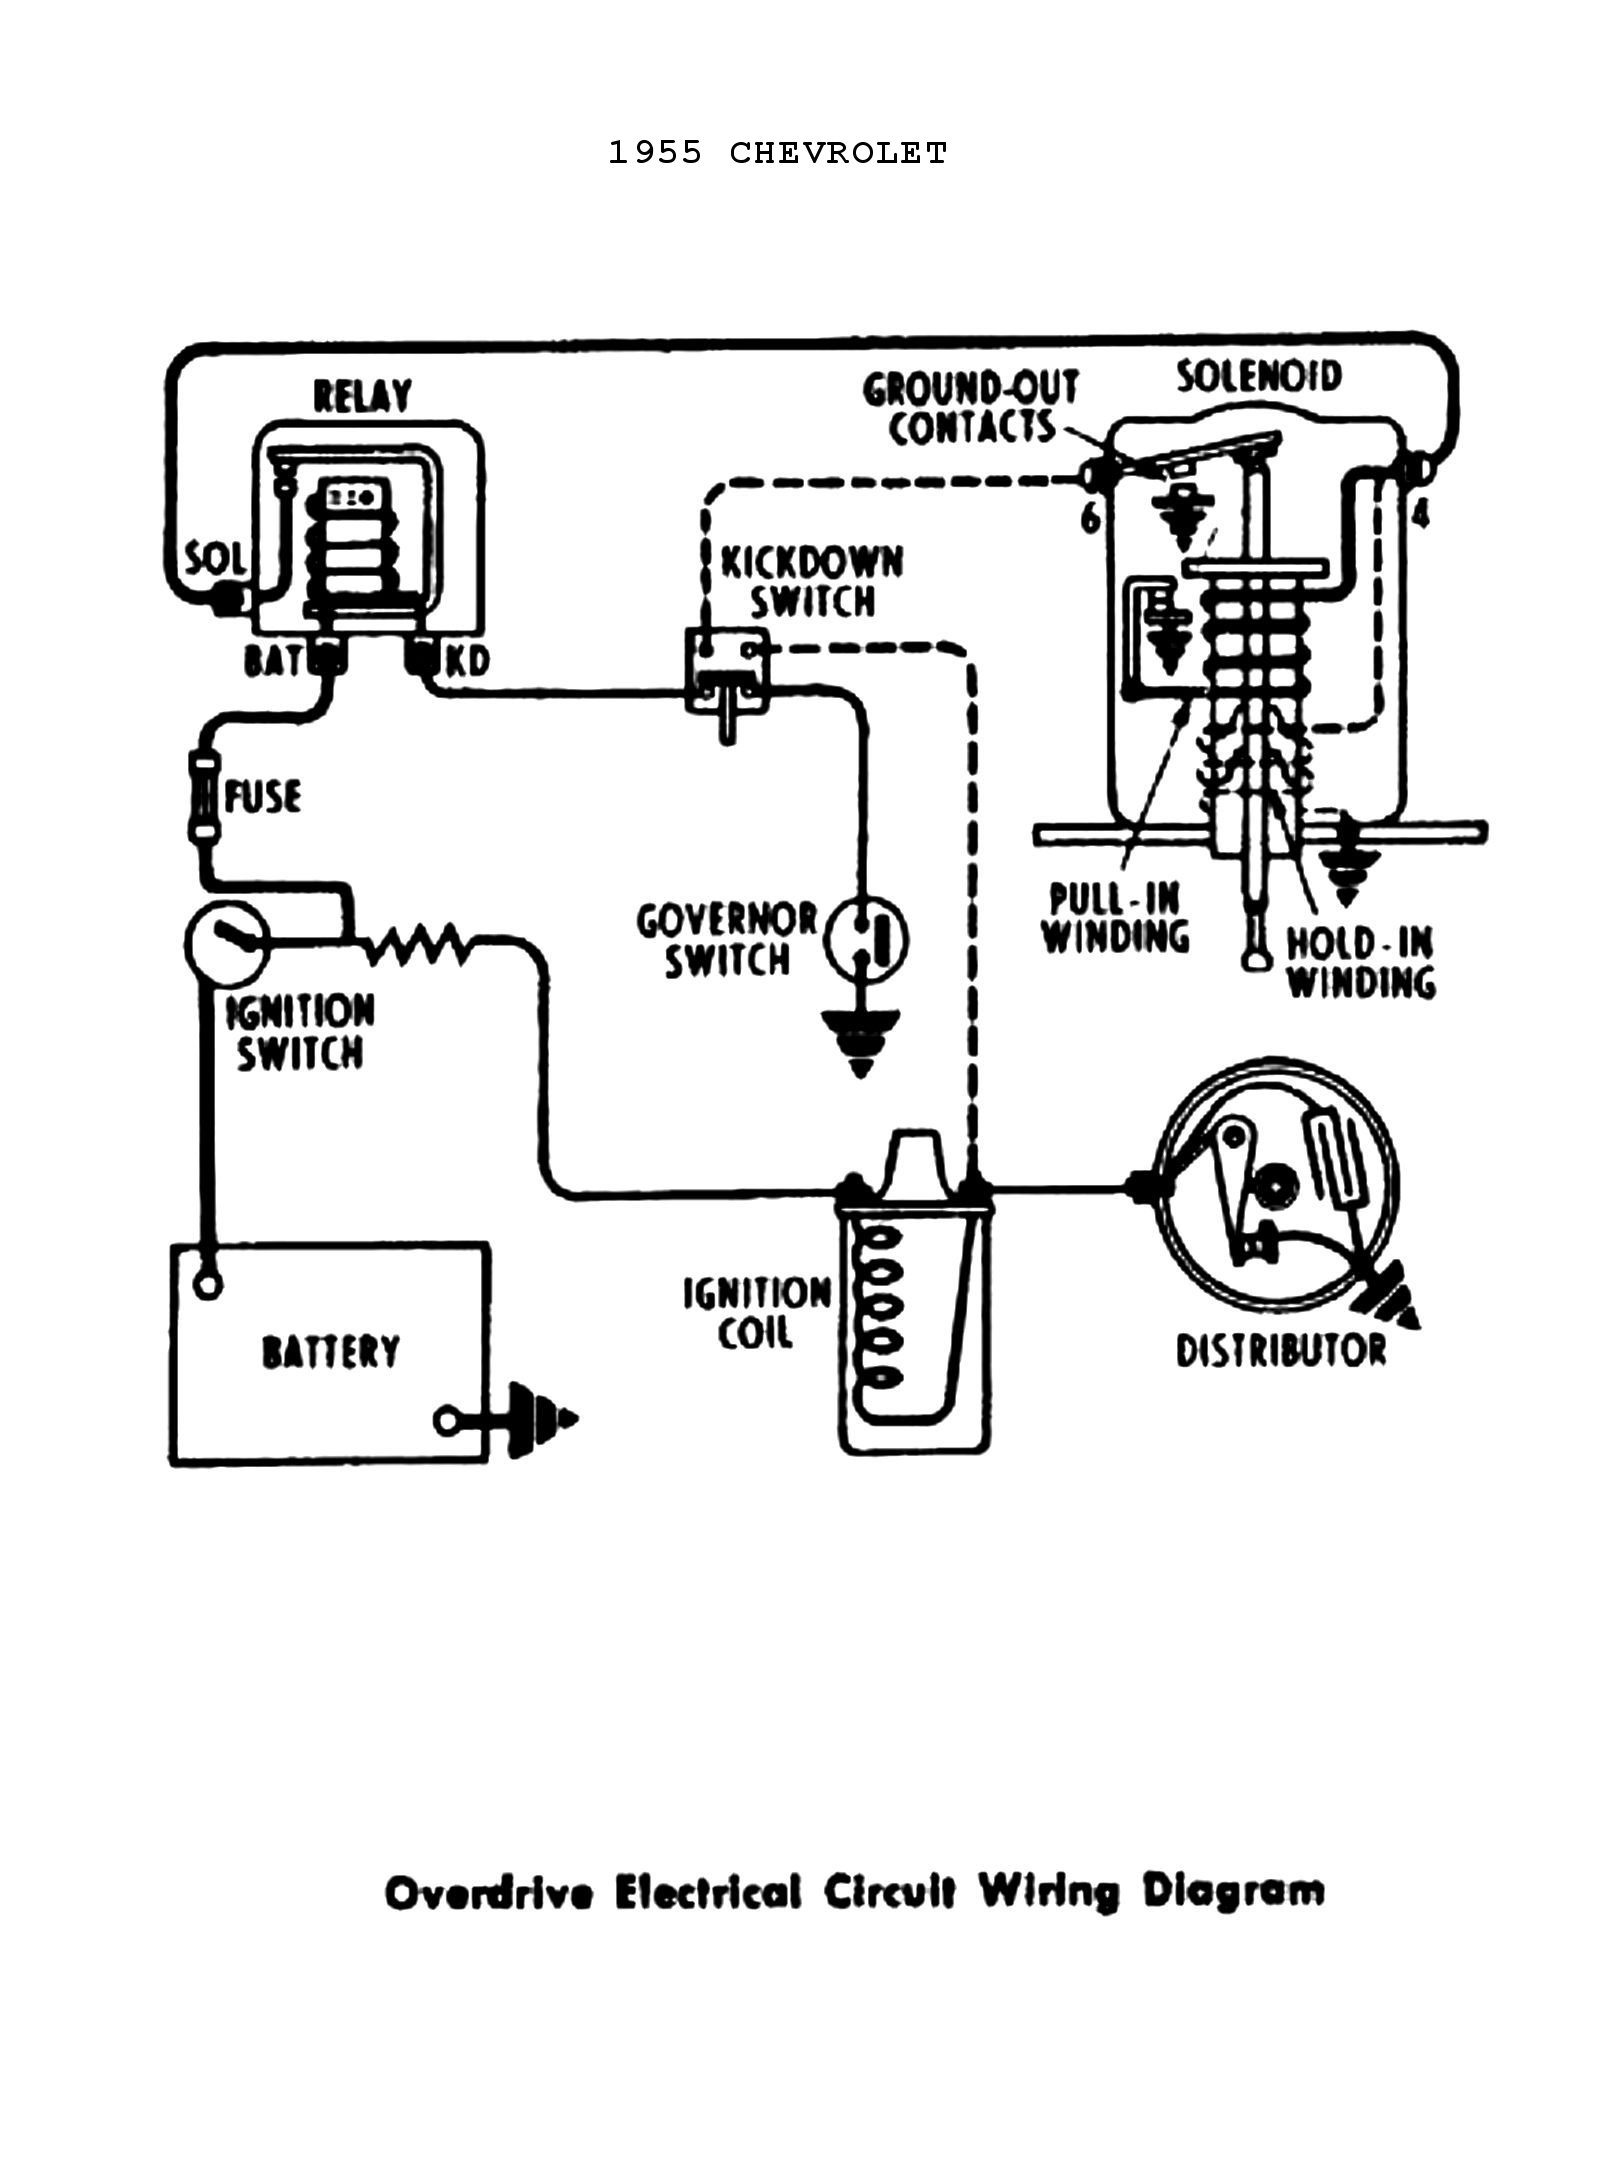 55odtrans1 simple chevy wiring diagram chevy truck wiring \u2022 wiring diagrams chevy 350 ignition wiring diagram at reclaimingppi.co